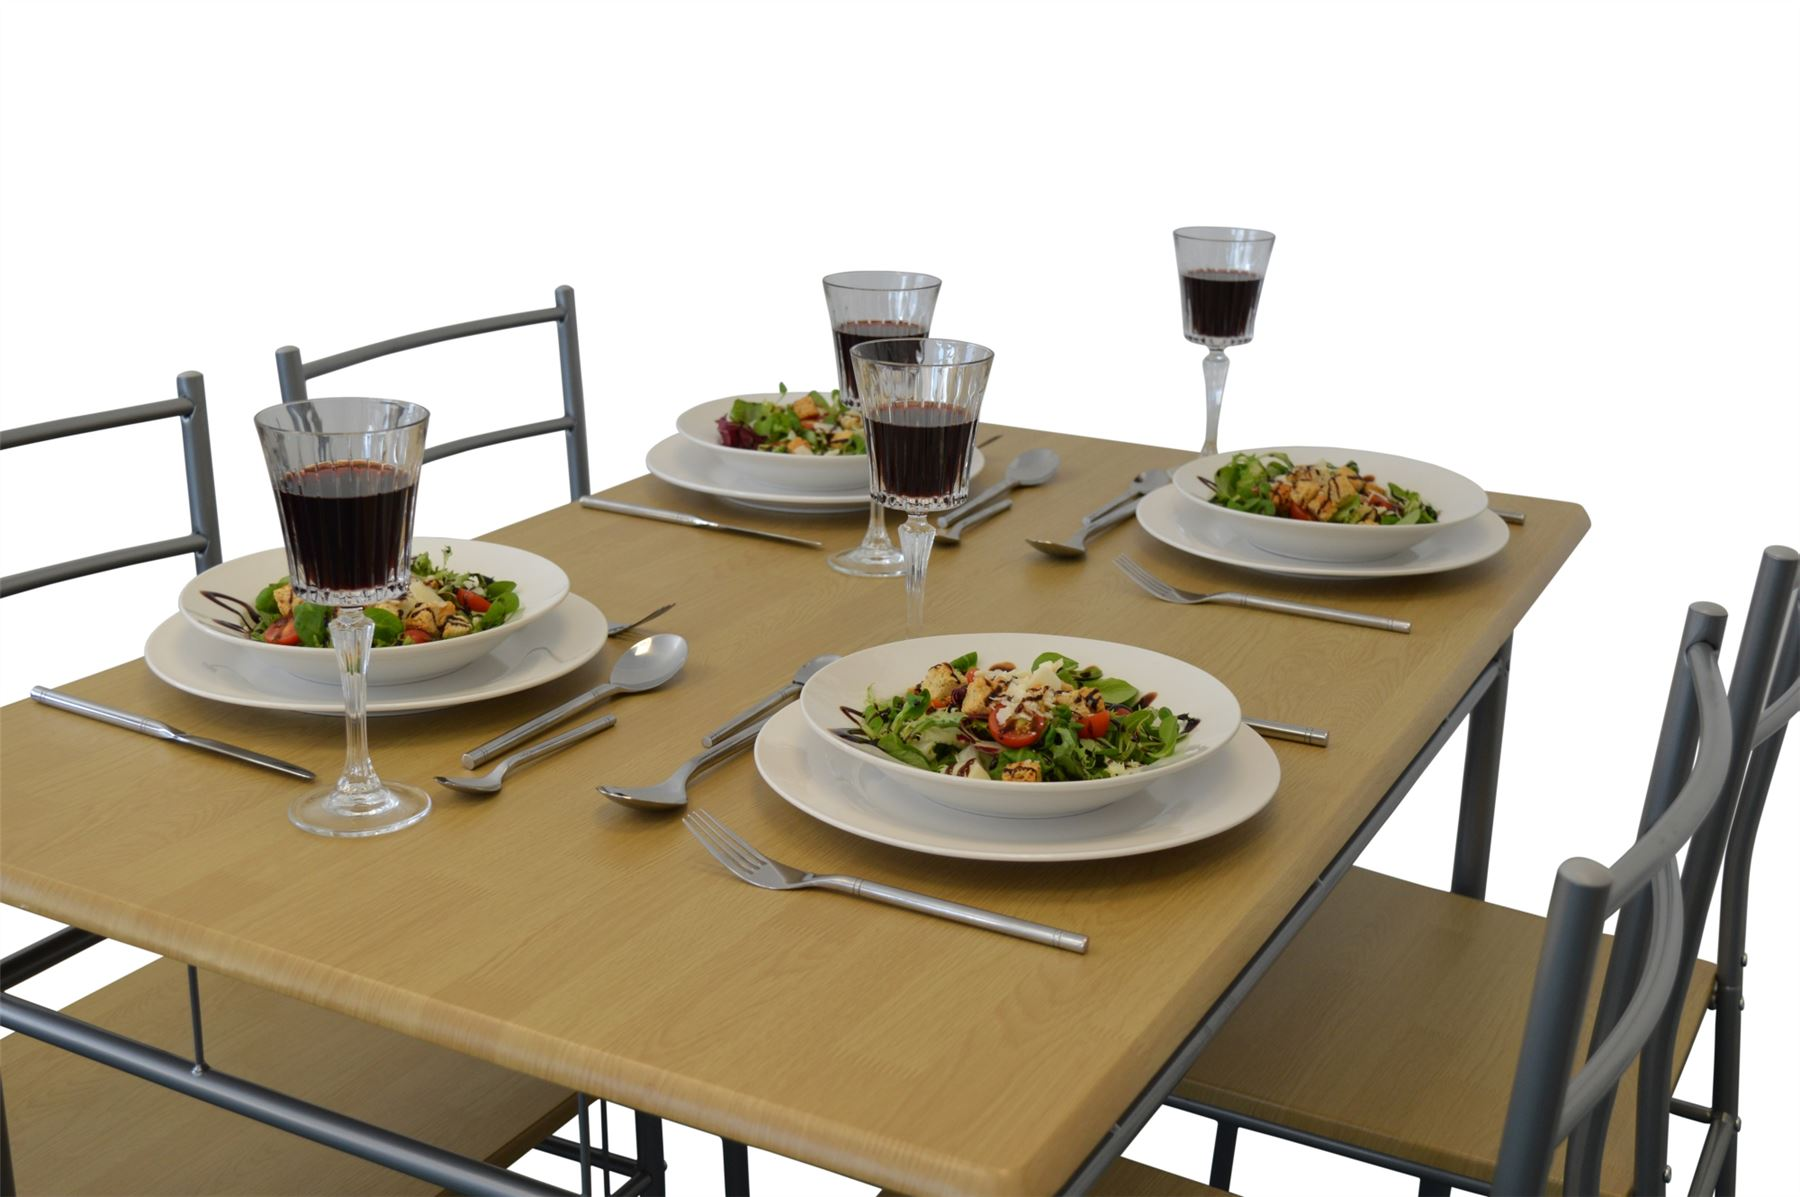 5 piece kitchen dining room table chairs furniture set silver ebay - Ebay kitchen table ...